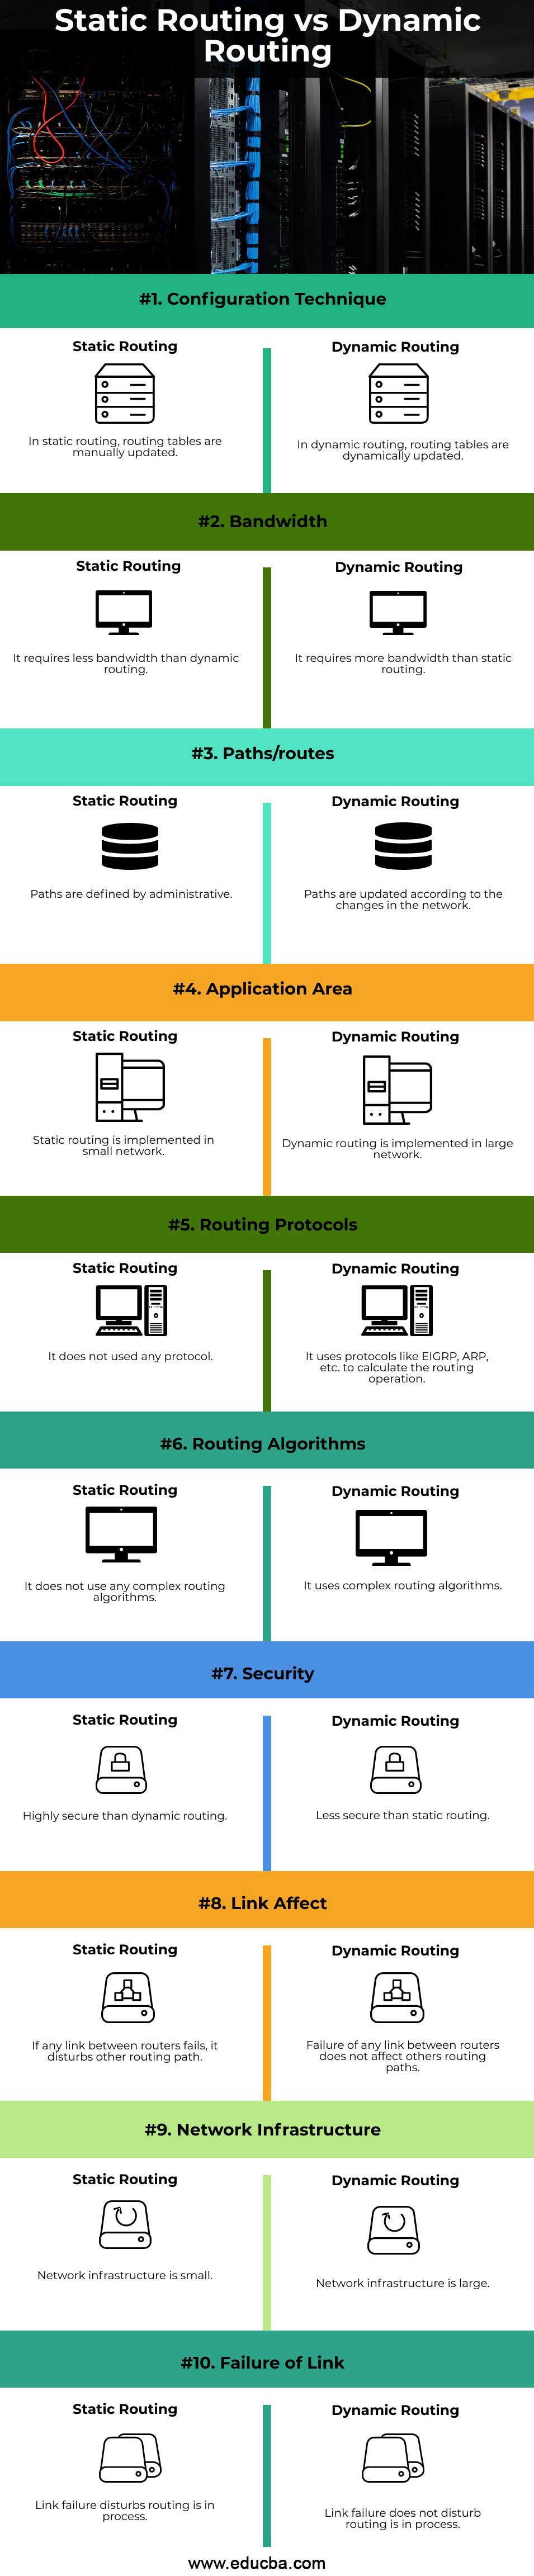 Static-Routing-vs-Dynamic-Routing-info